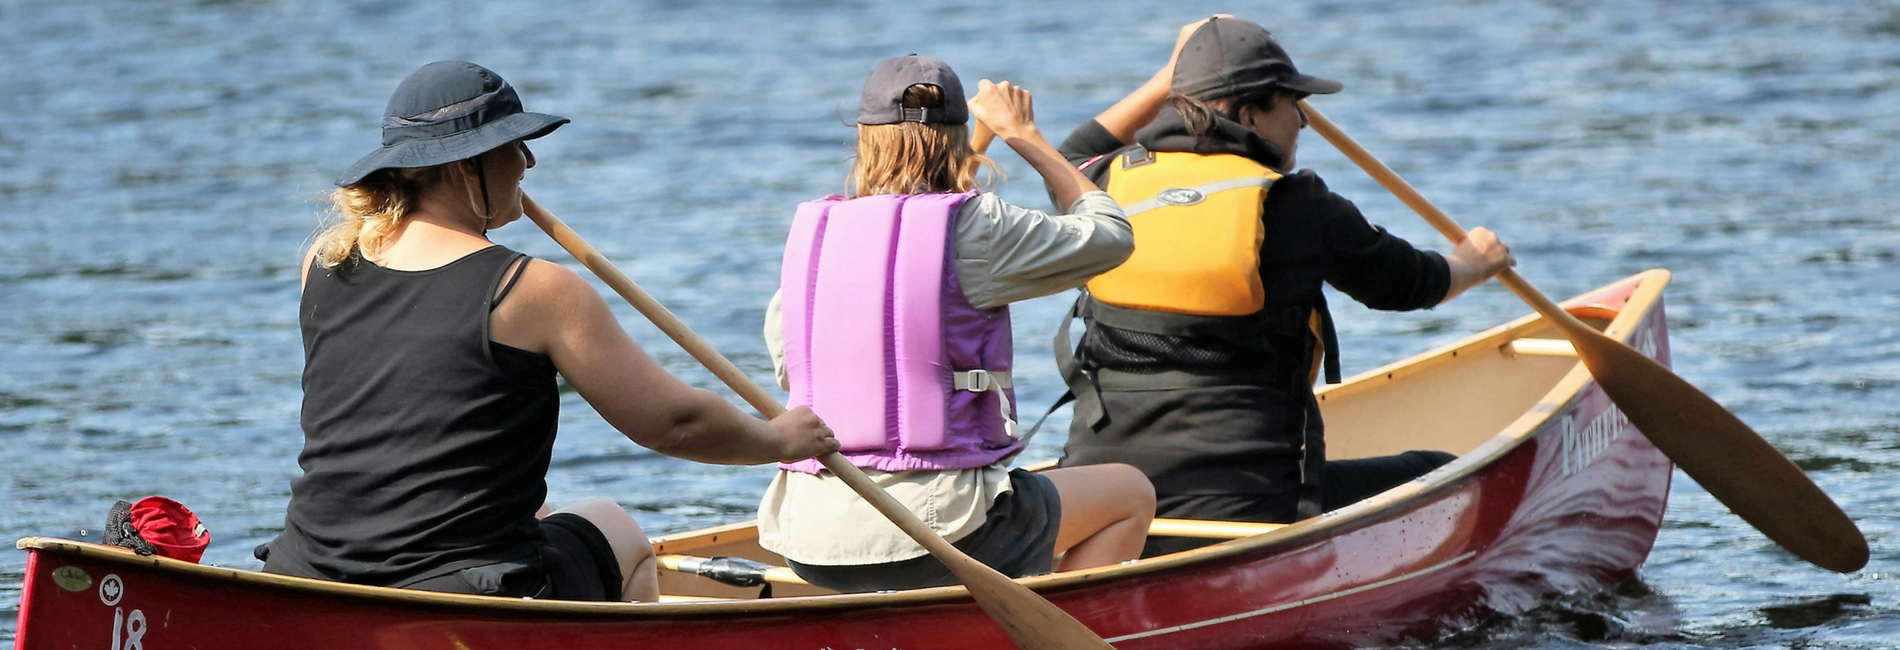 Standard swscd   paddling  1   activity banner image    1900x650  copy